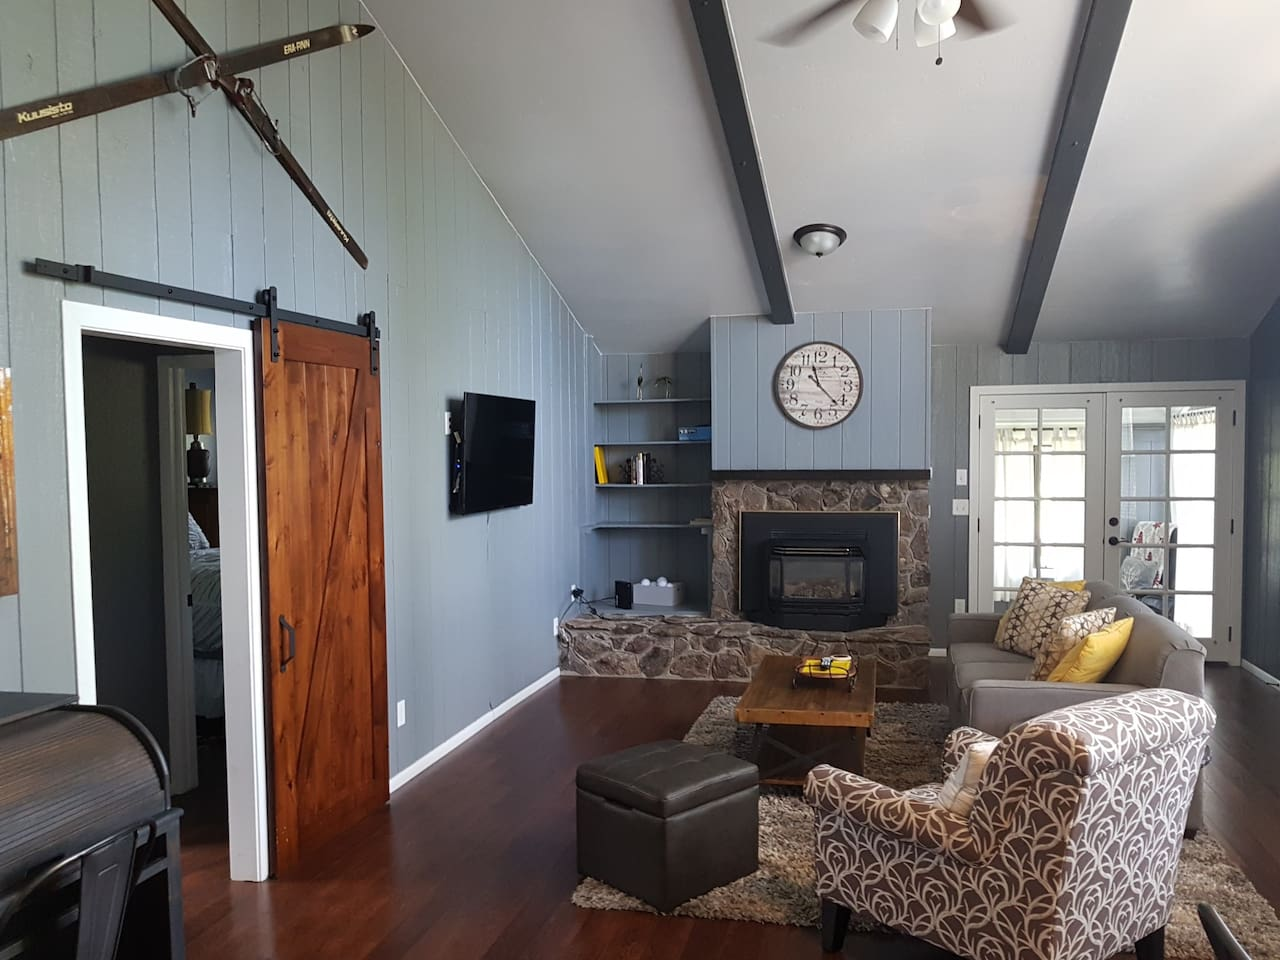 Great room includes fireplace and lots of natural light with view of Mount Elden, perfect for winter ski cabin or high elevation summer retreat. Barn door to Master bedroom and bath. French doors open to sunroom/ second bedroom.